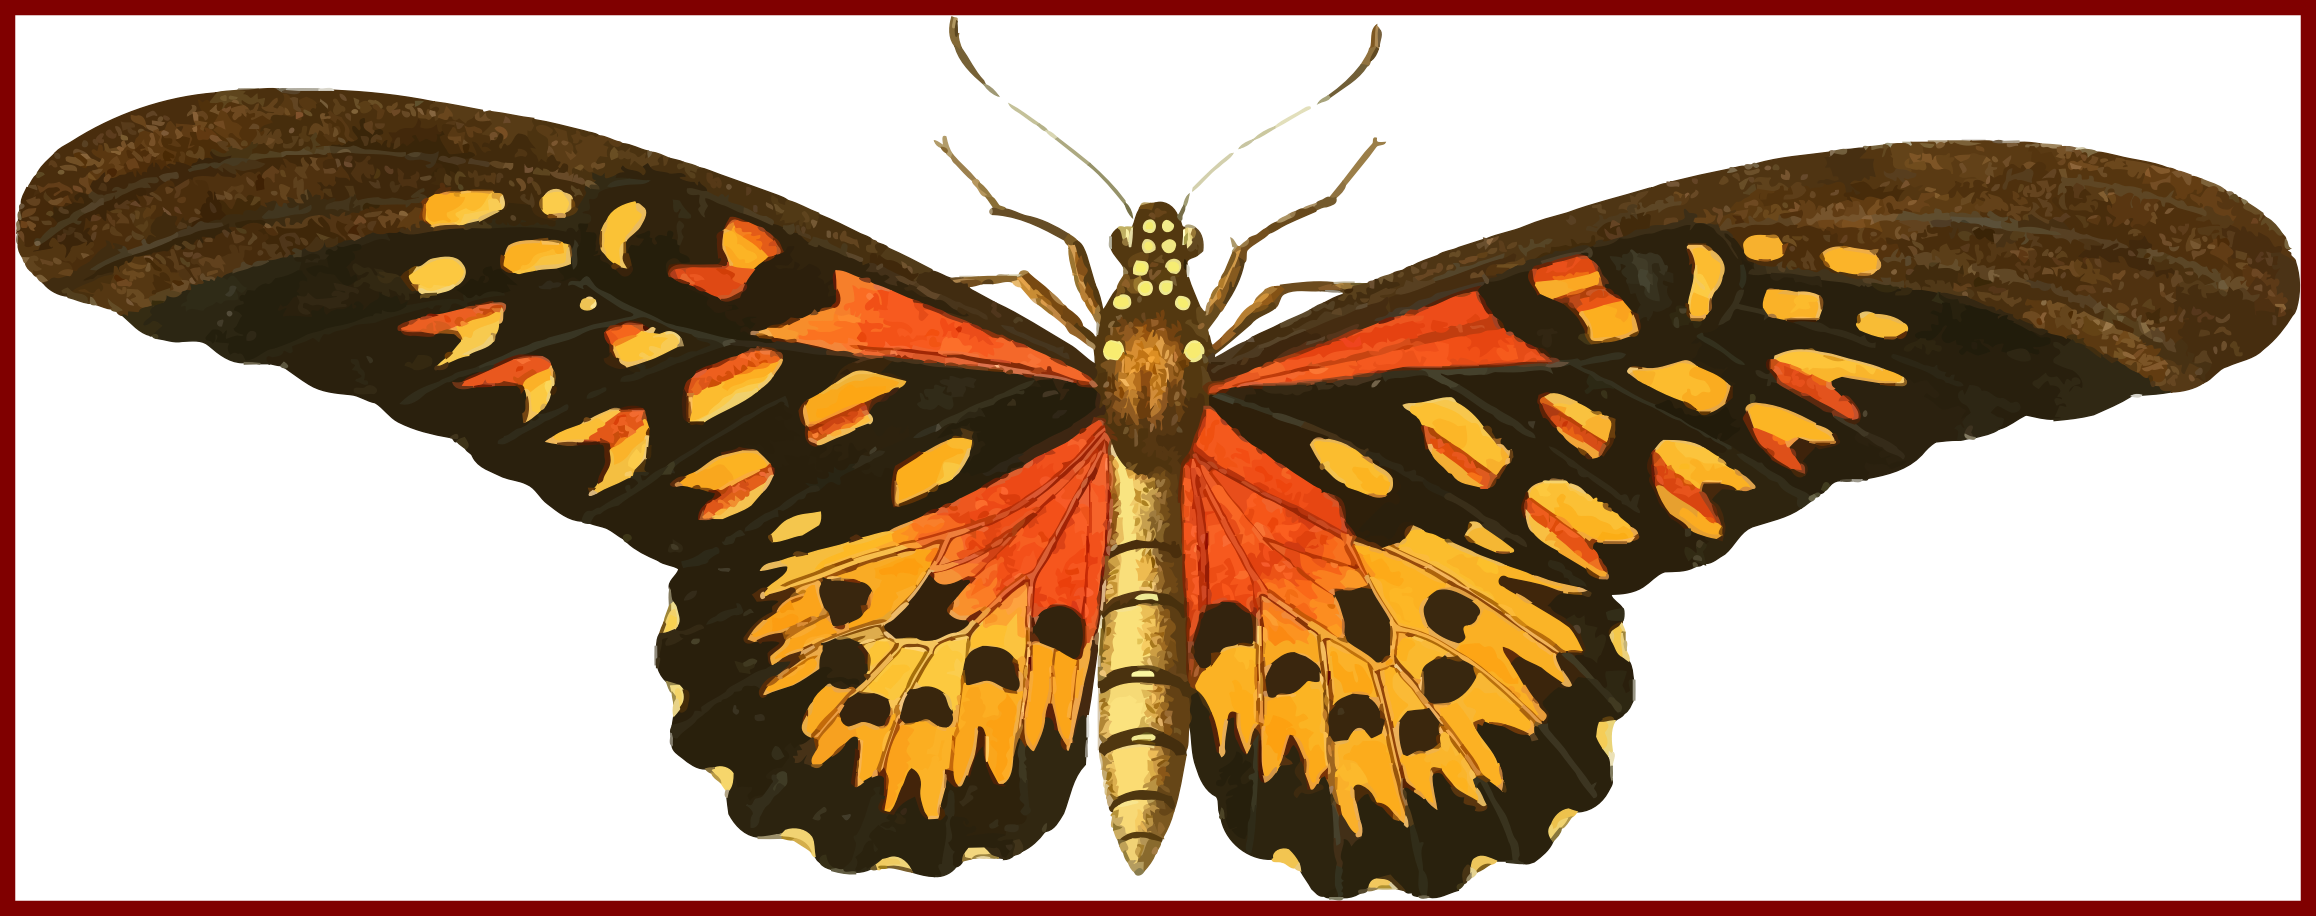 Moth clipart vintage. Awesome image from http